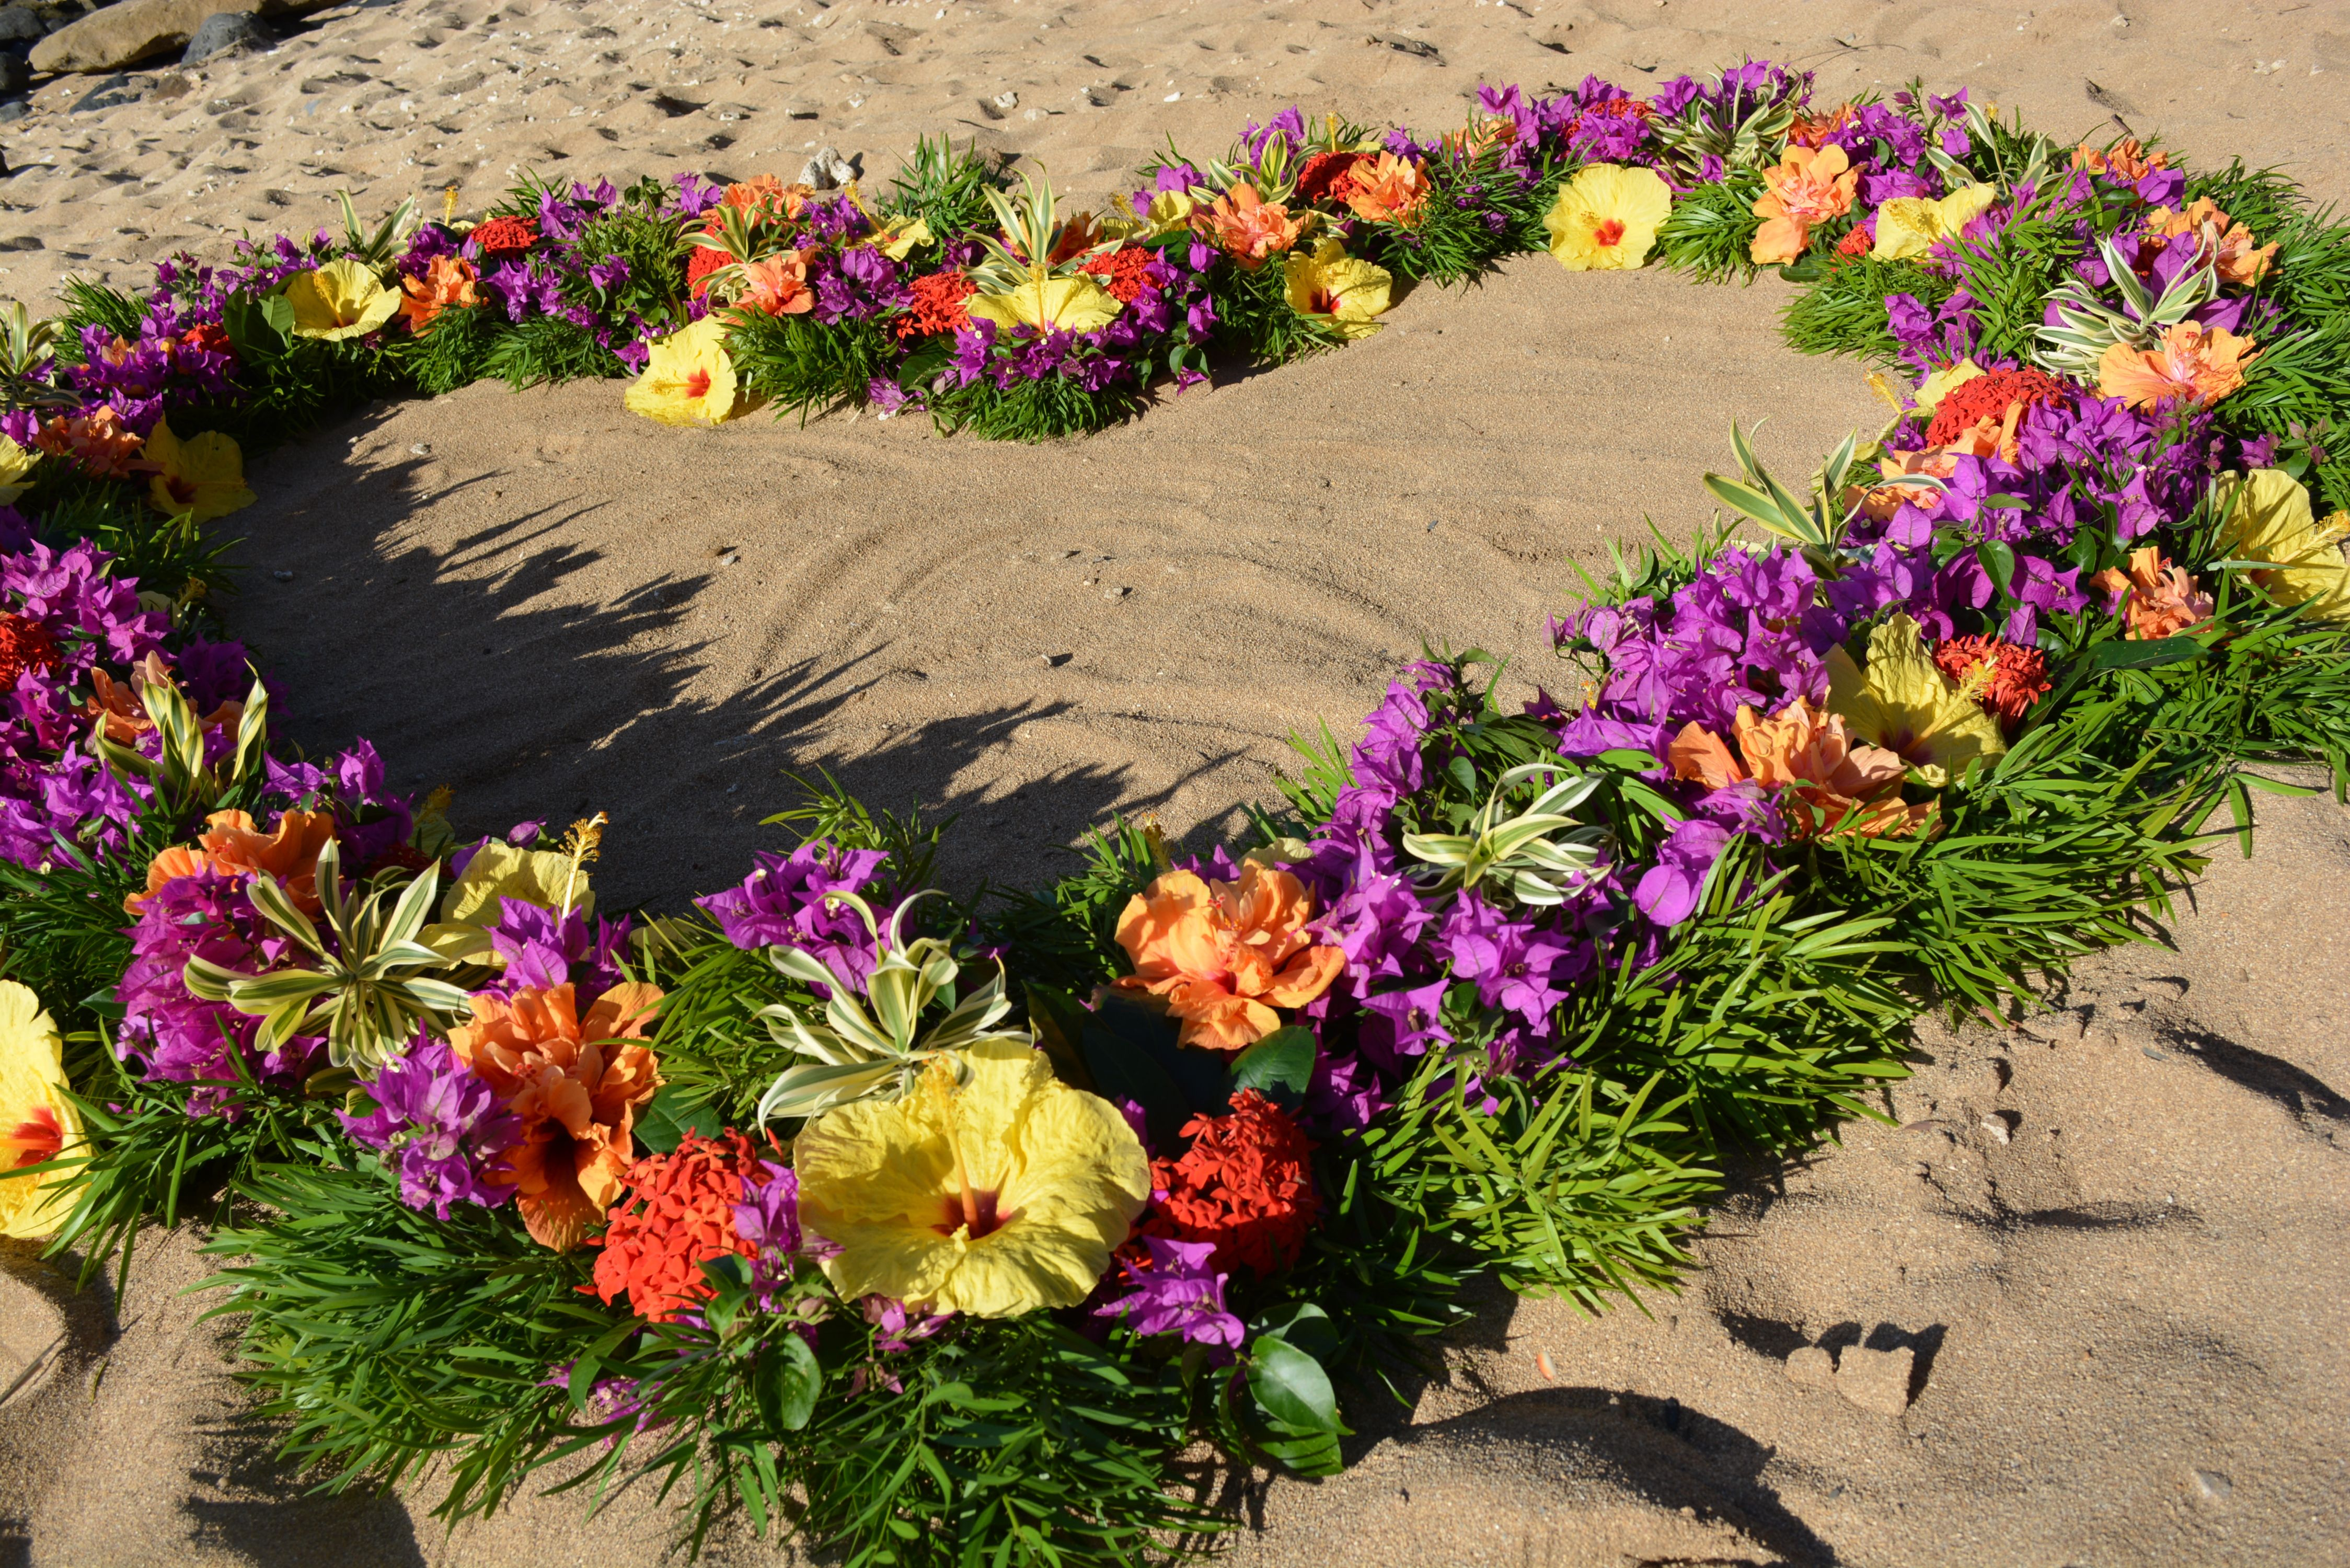 Vivid Tropical Flowers Of The Garden Variety On A Bed Of Greenery